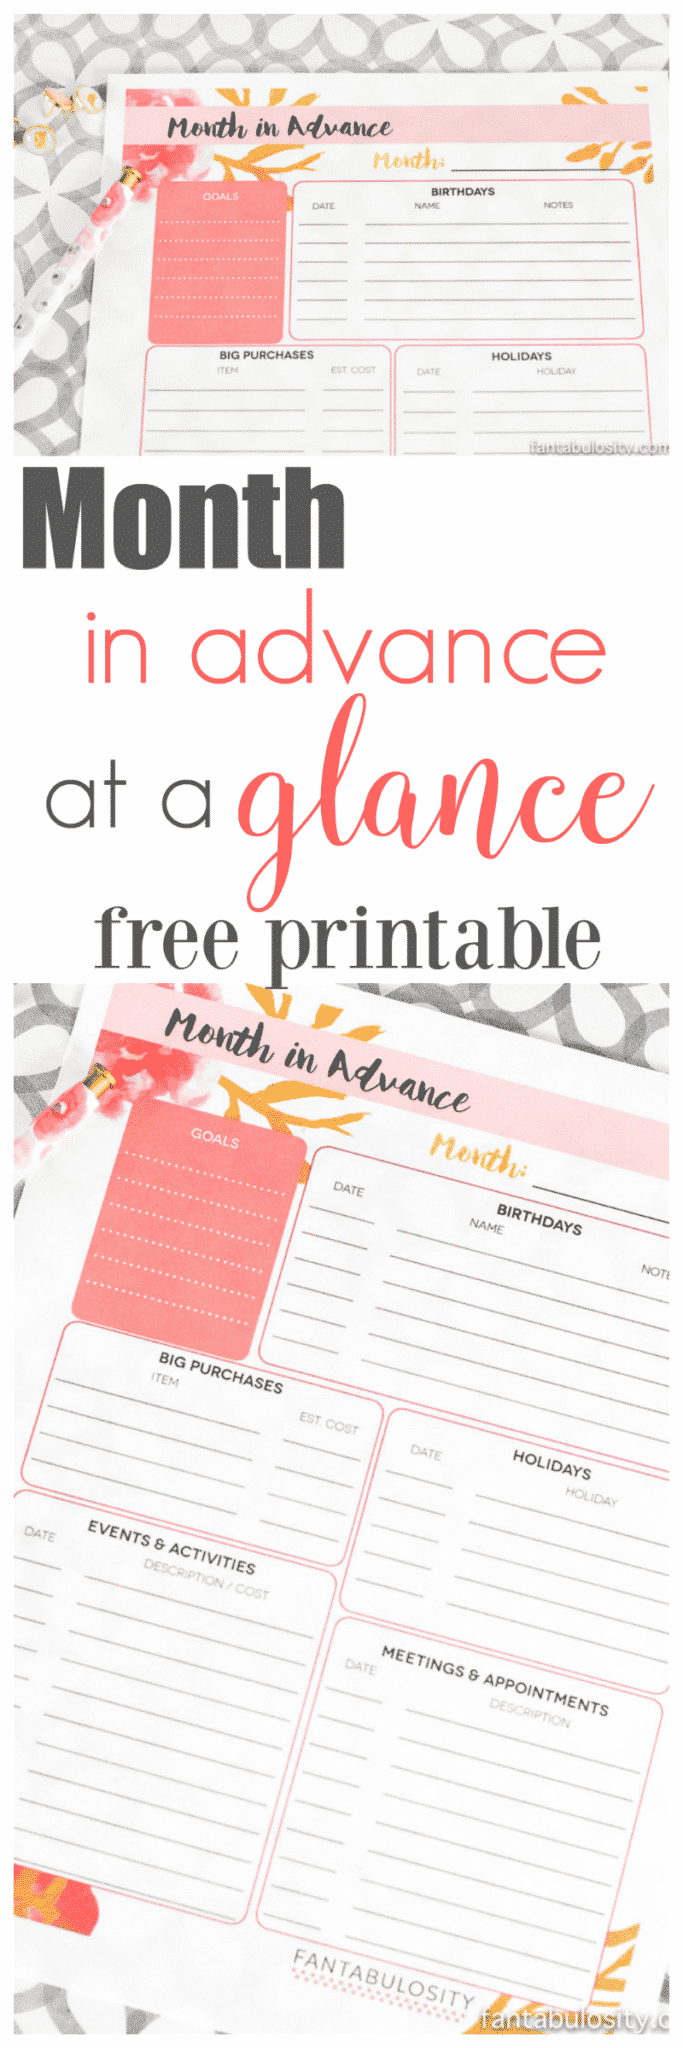 FREE Printable Month in advance, at a glance. It's great to see all of this on one sheet each month